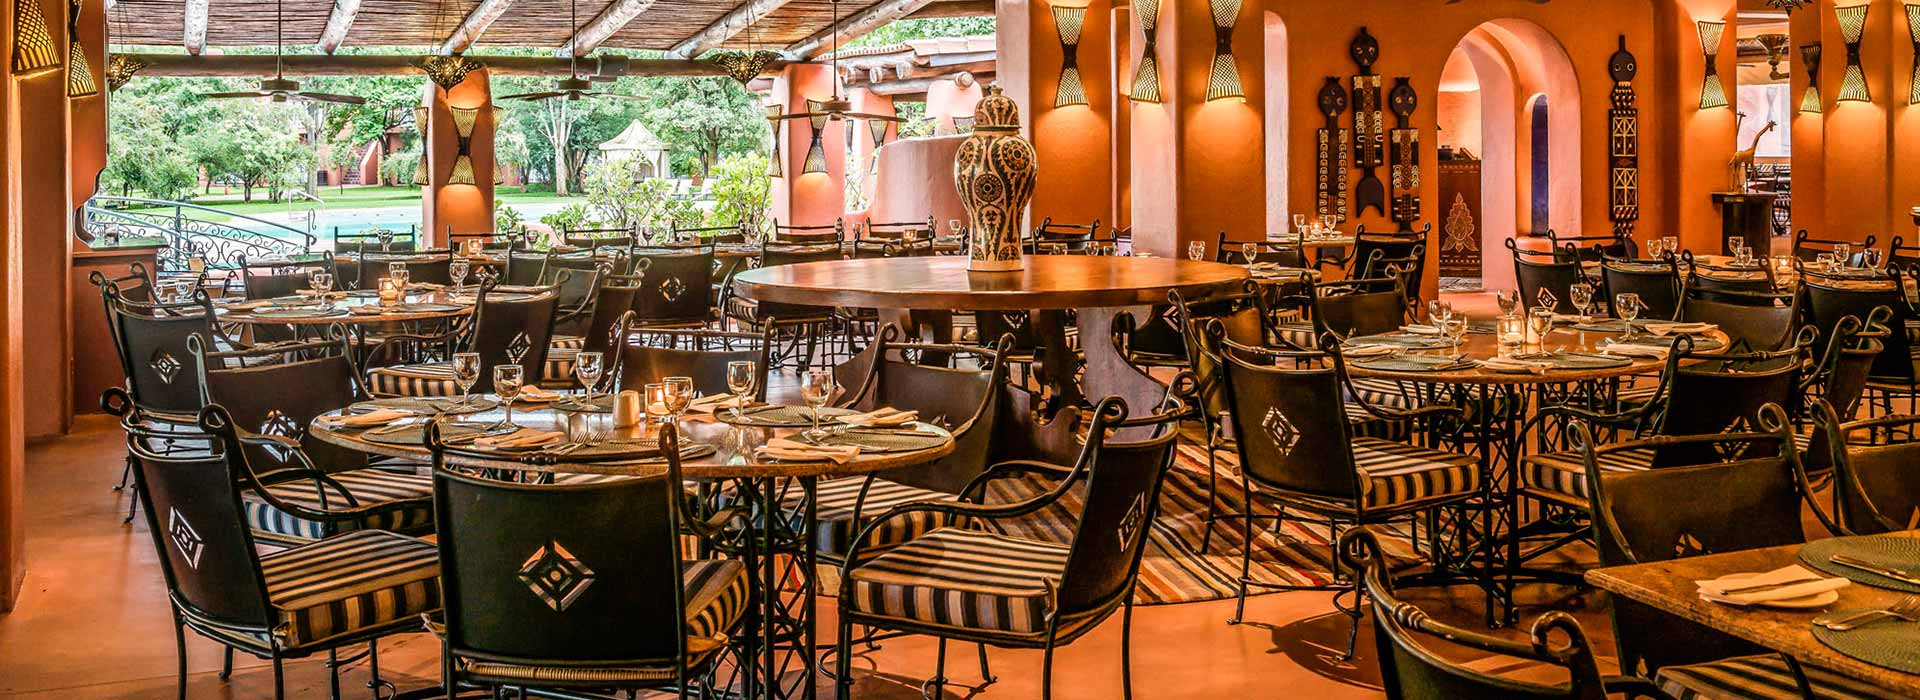 Theatre of food is among best Zambia Restaurants